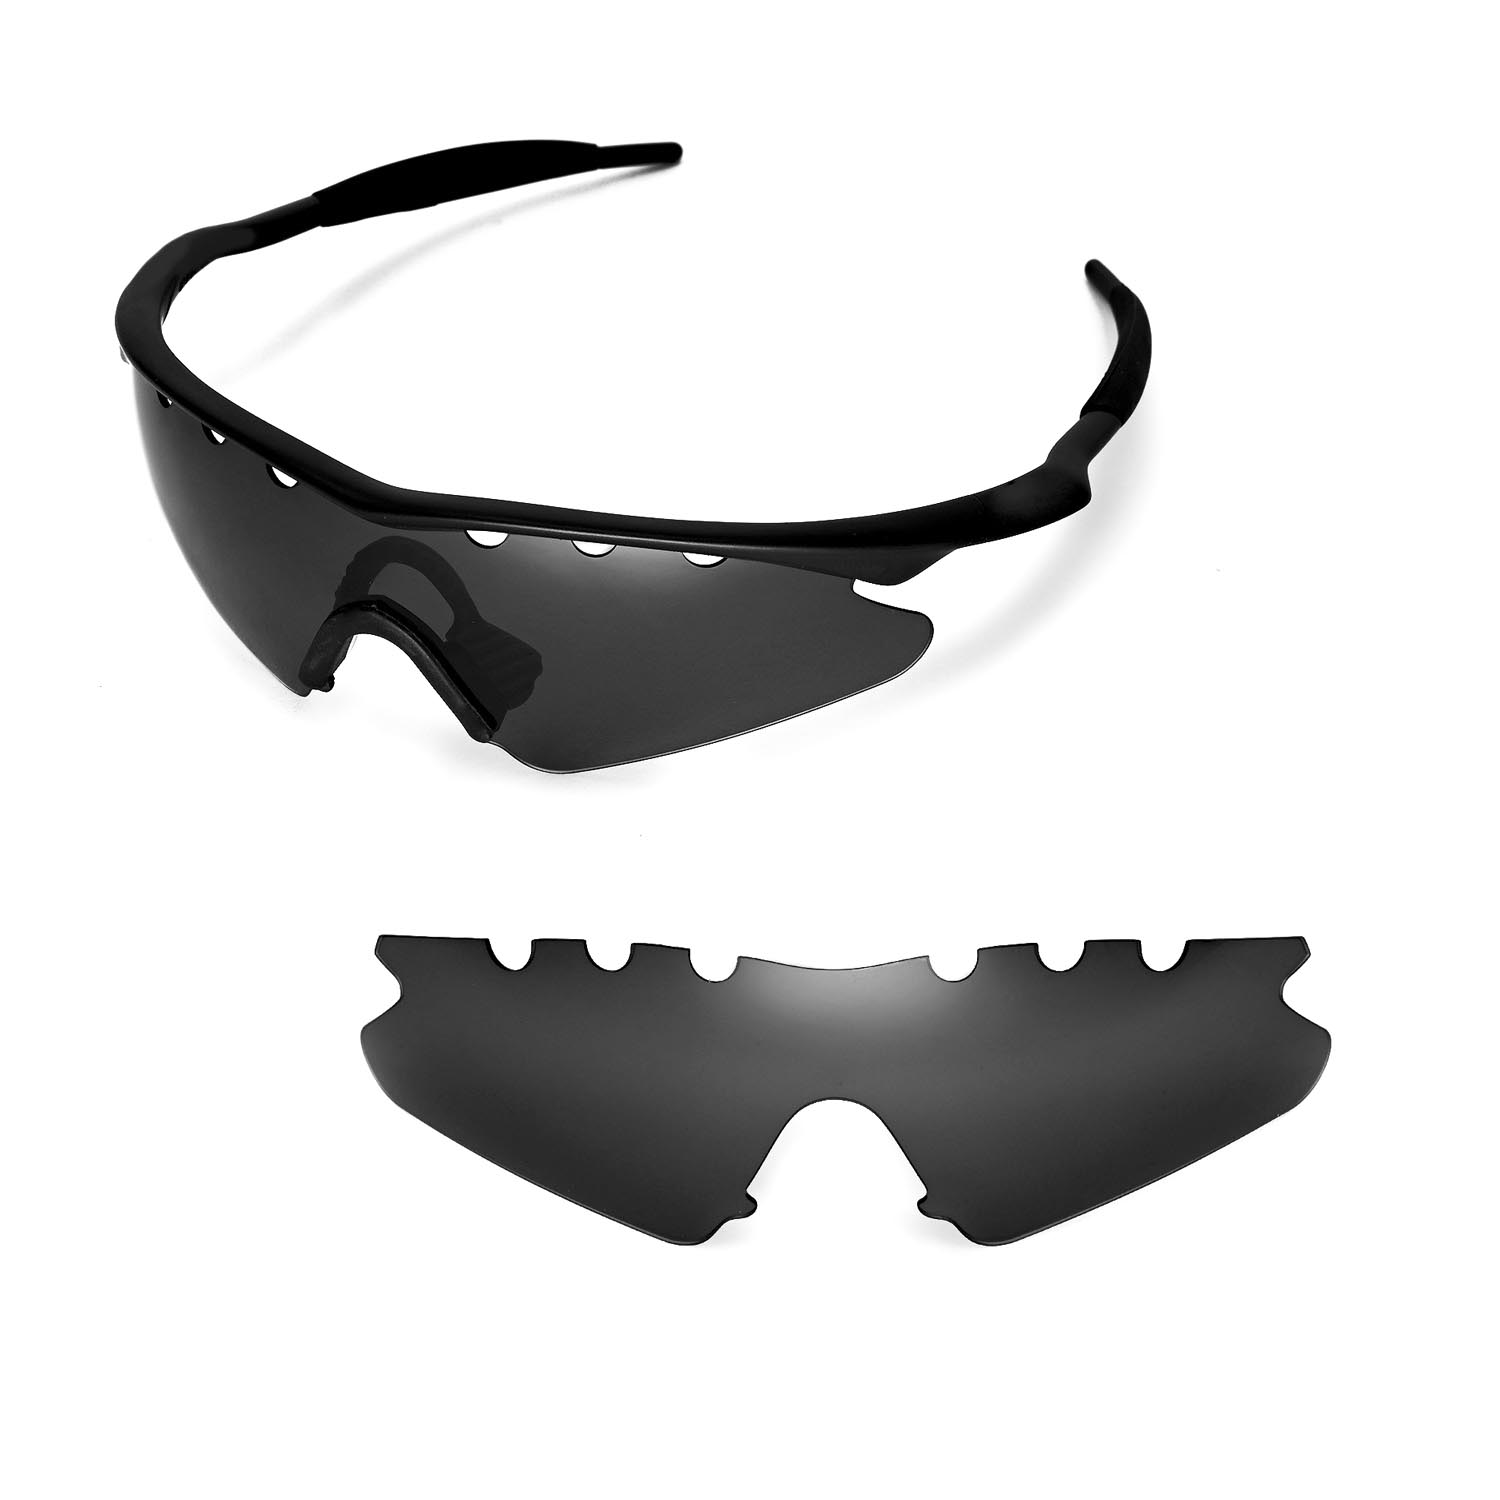 wl vented replace lenses for oakley m frame sweep sunglasses rh ebay com